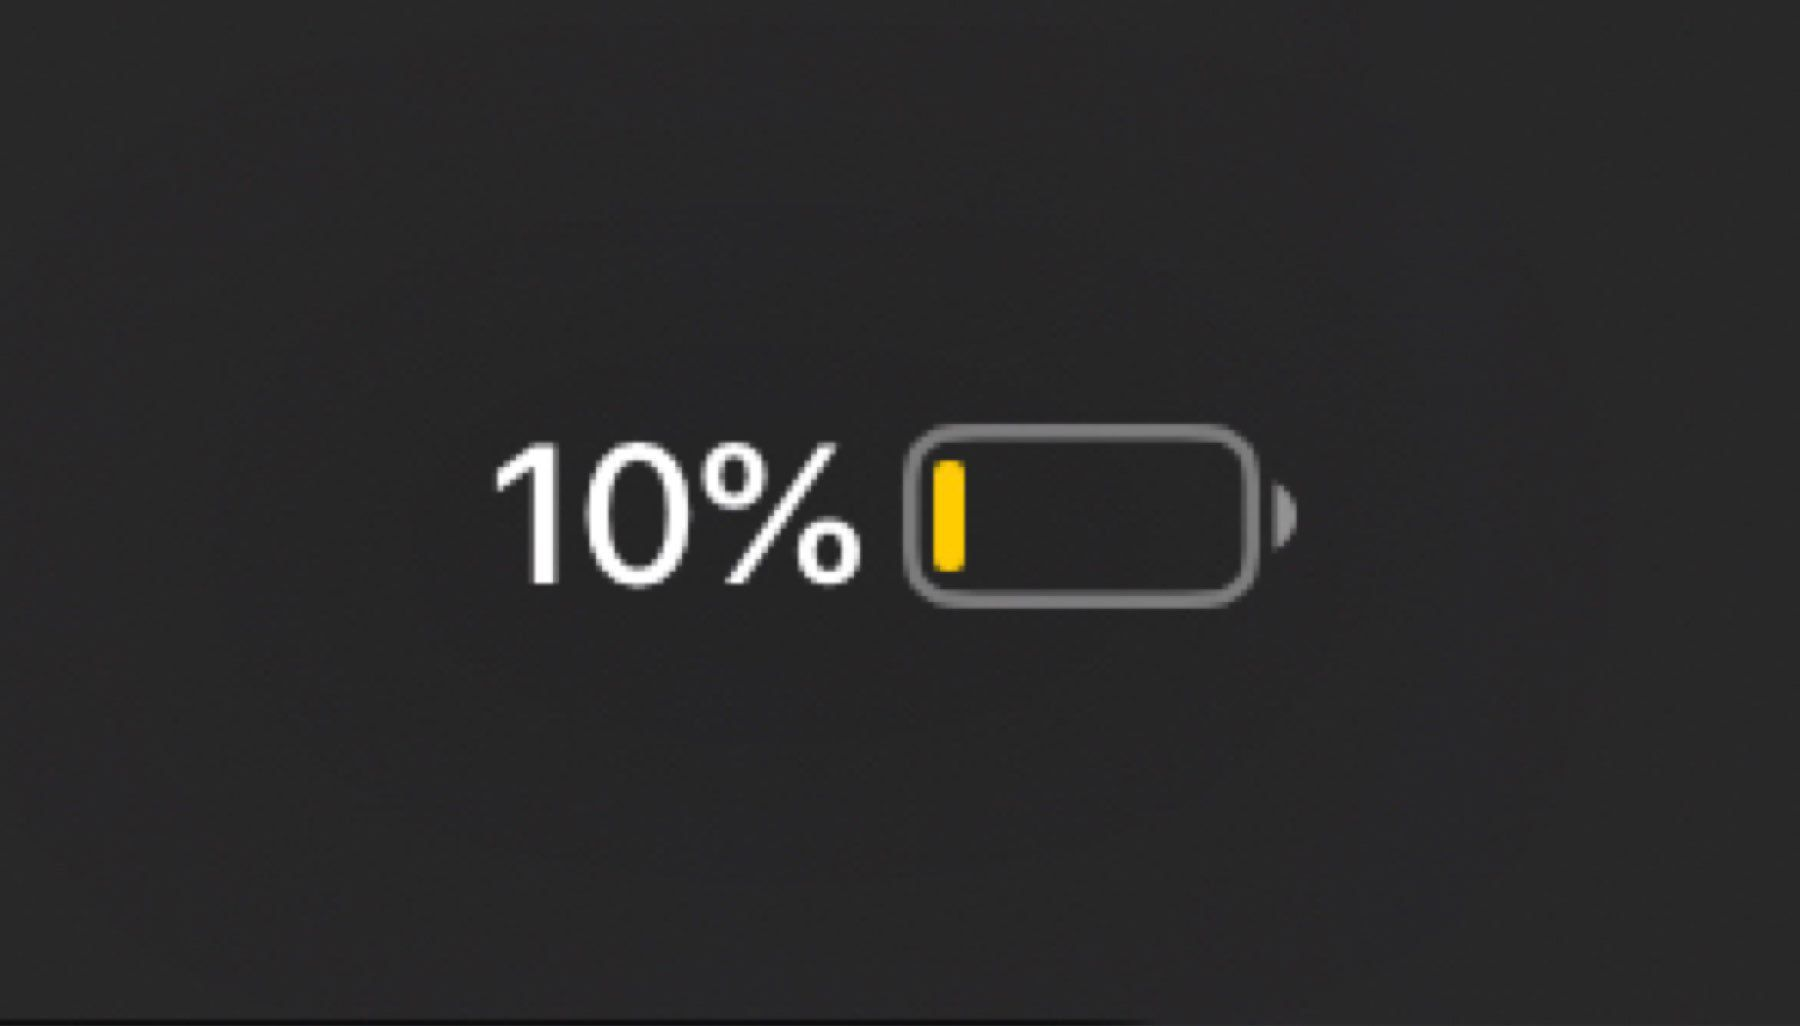 The battery meter showing 10% remaining.